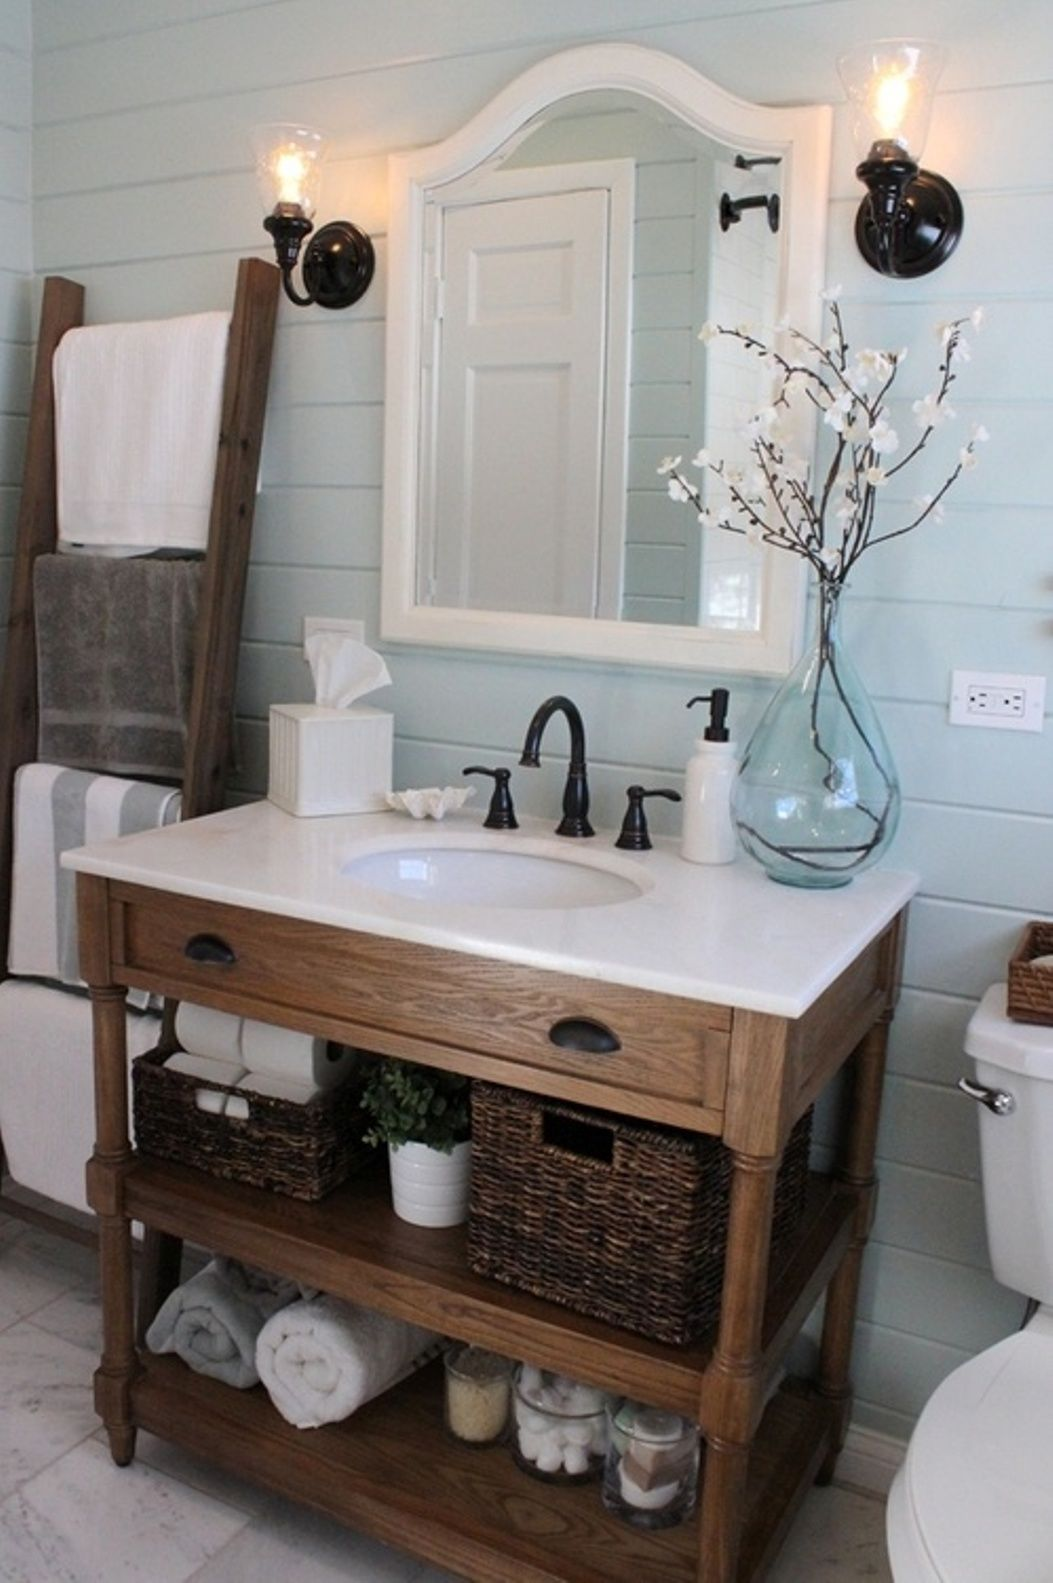 Rustic bathroom decor - Cottage Bath With Painted Shiplap And Vintage Hardware